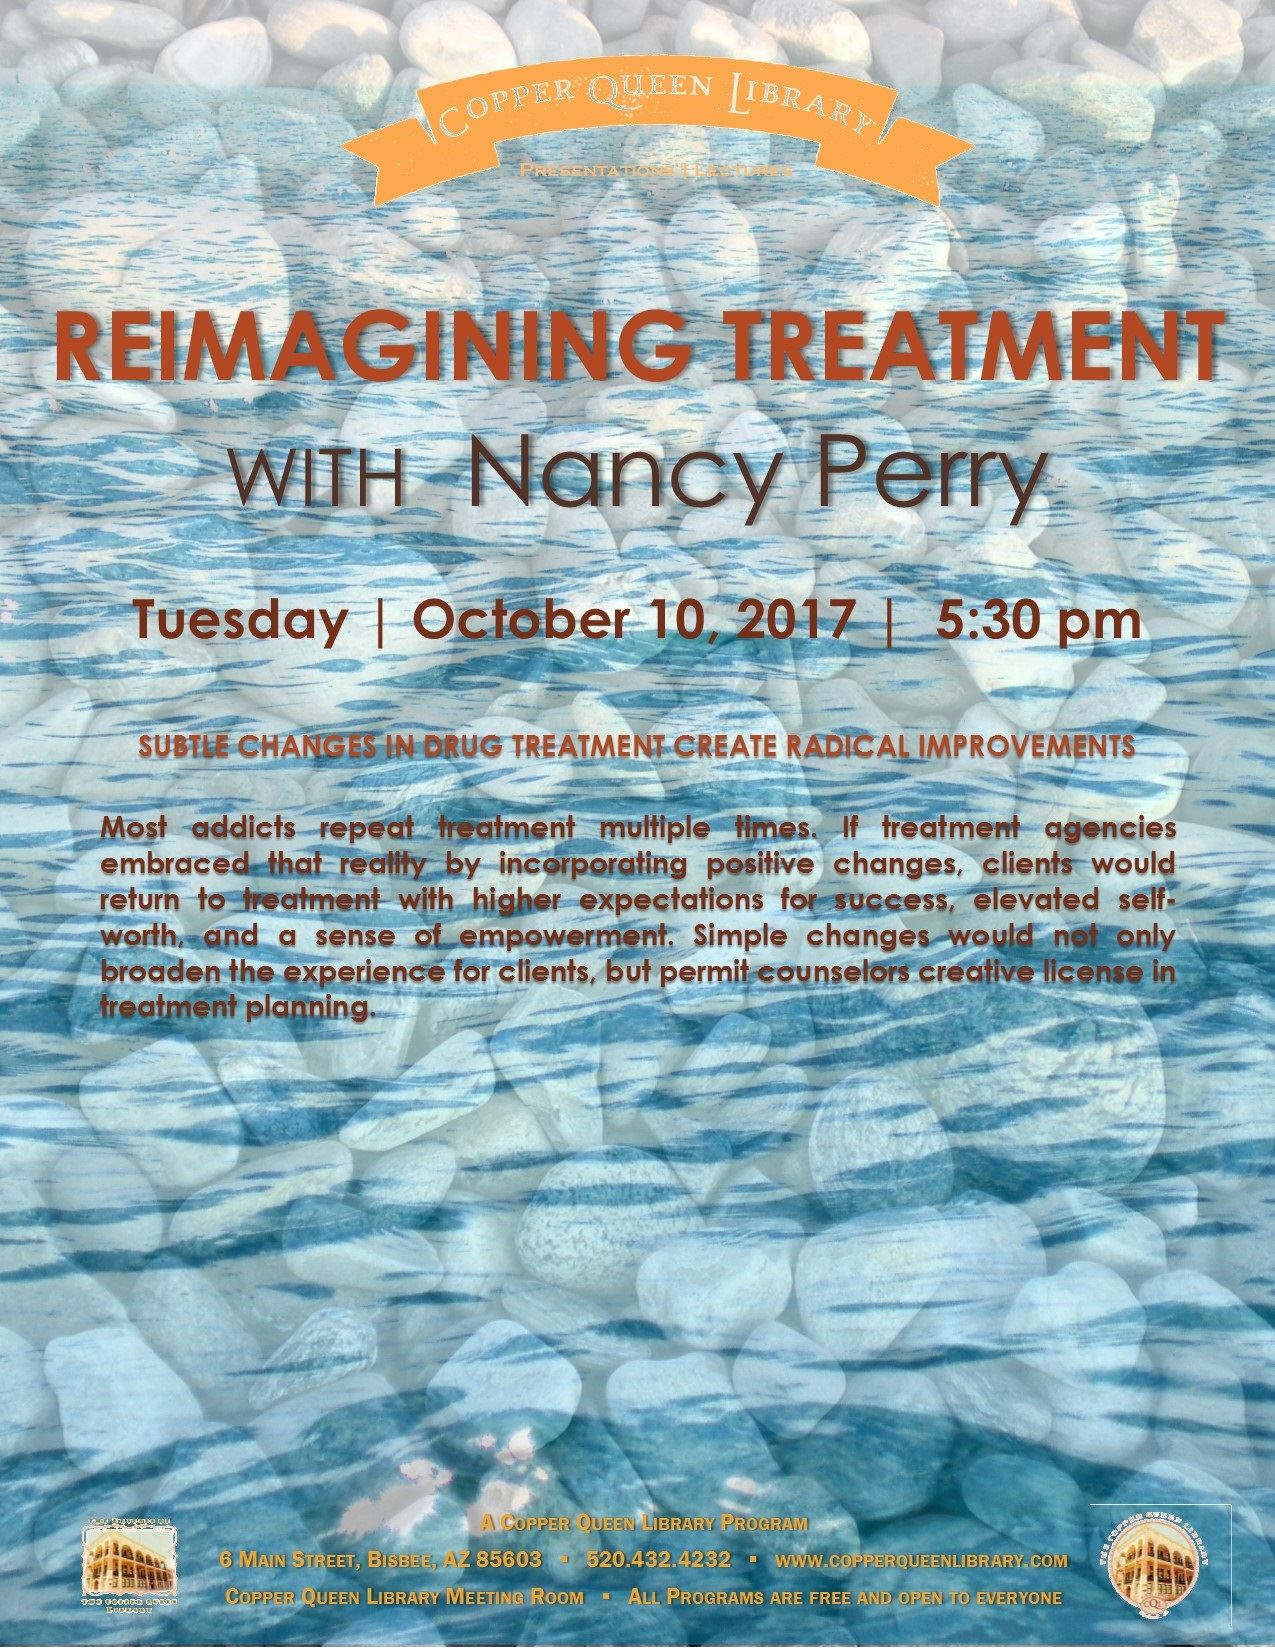 NANCY PERRY REIMAGINIG TREATMENT POSTER 10.10.17 8.5 x 11